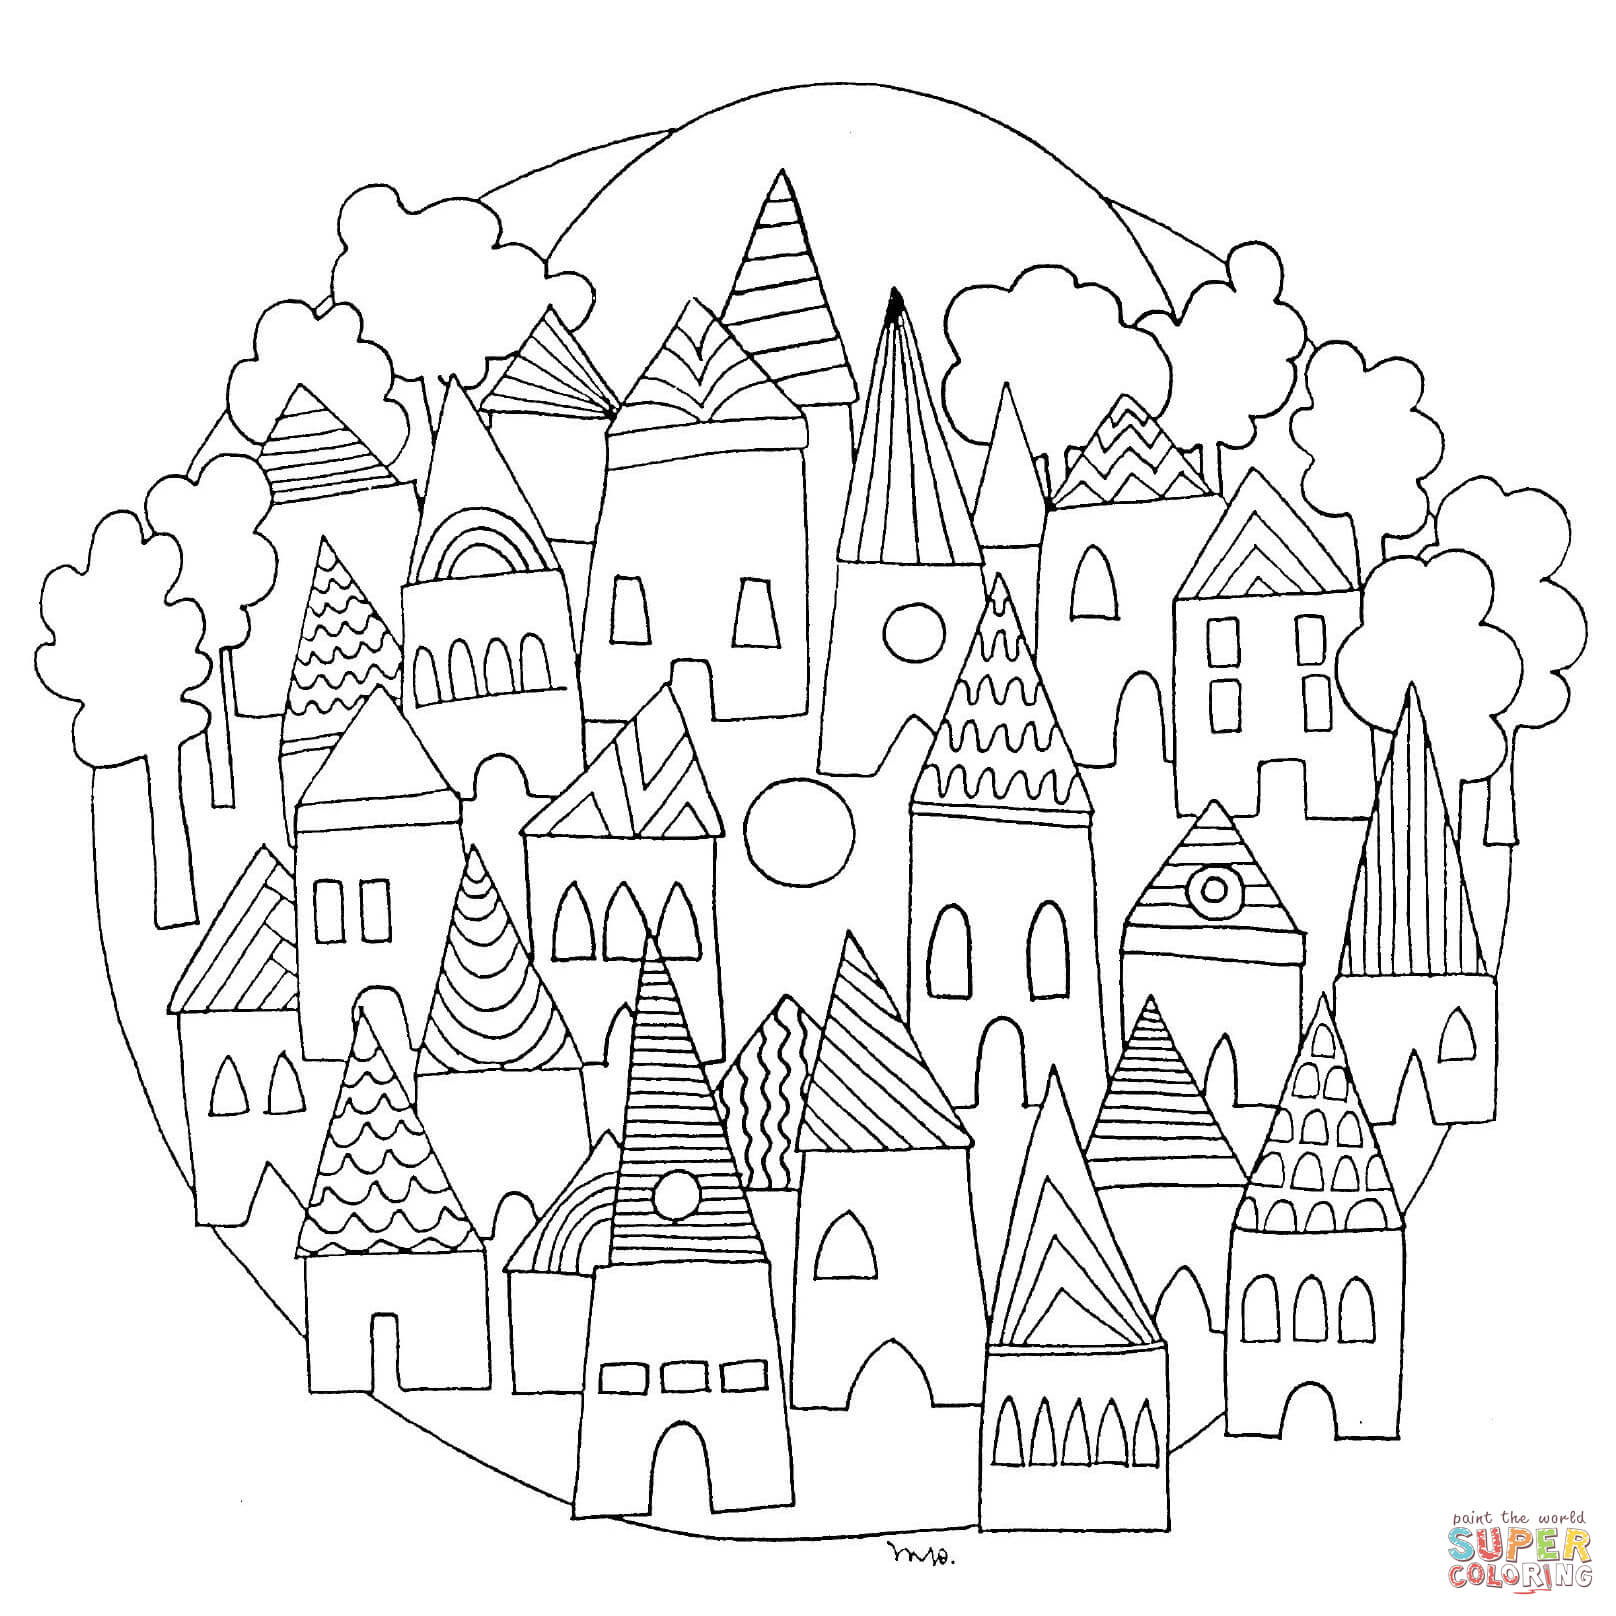 1616x1616 Cityscape Mandala Coloring Page Free Printable Coloring Pages